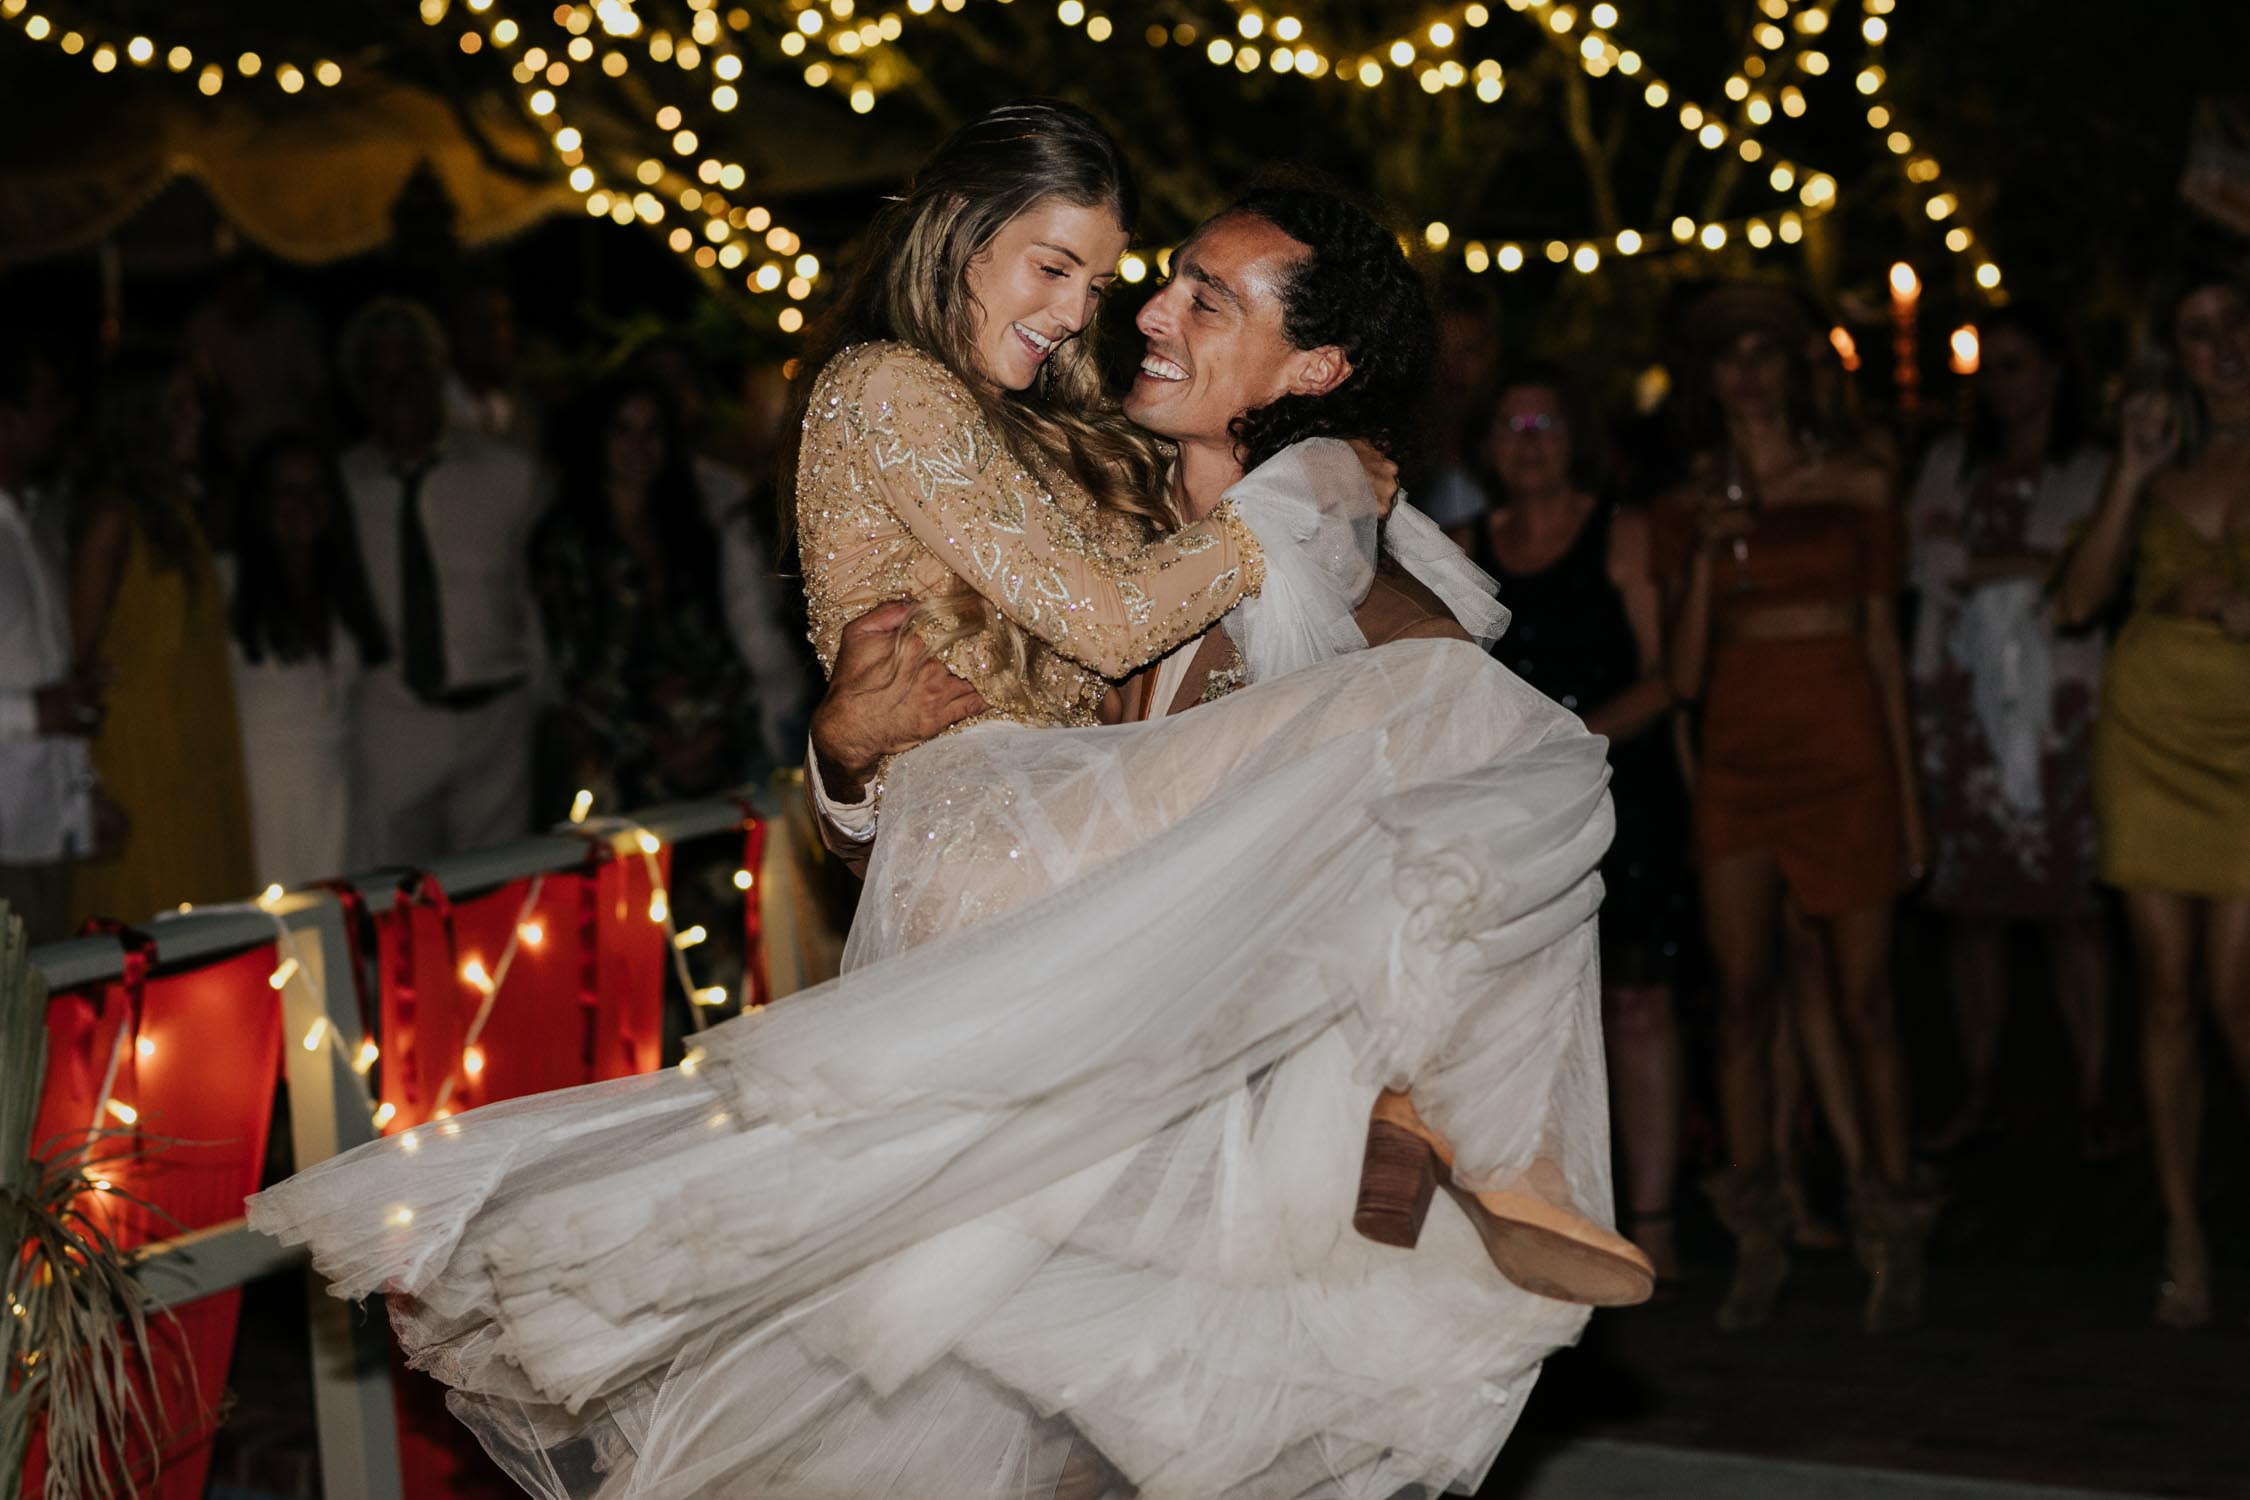 Grooms picks up bride and spins her around during epic first dance